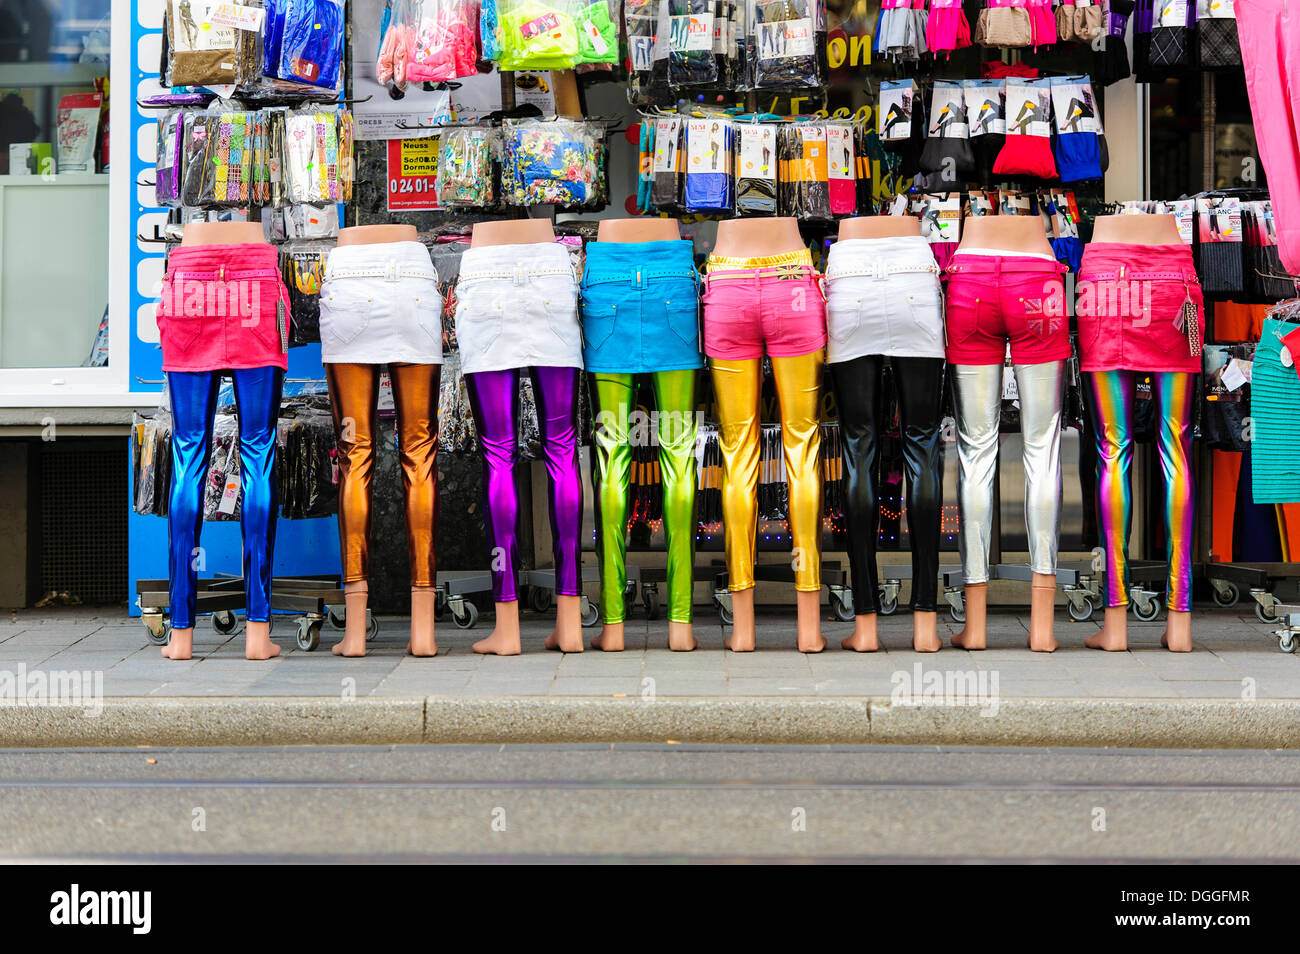 Legs of mannequins standing in a row in front of a clothing store, Neuss, North Rhine-Westphalia, Germany - Stock Image